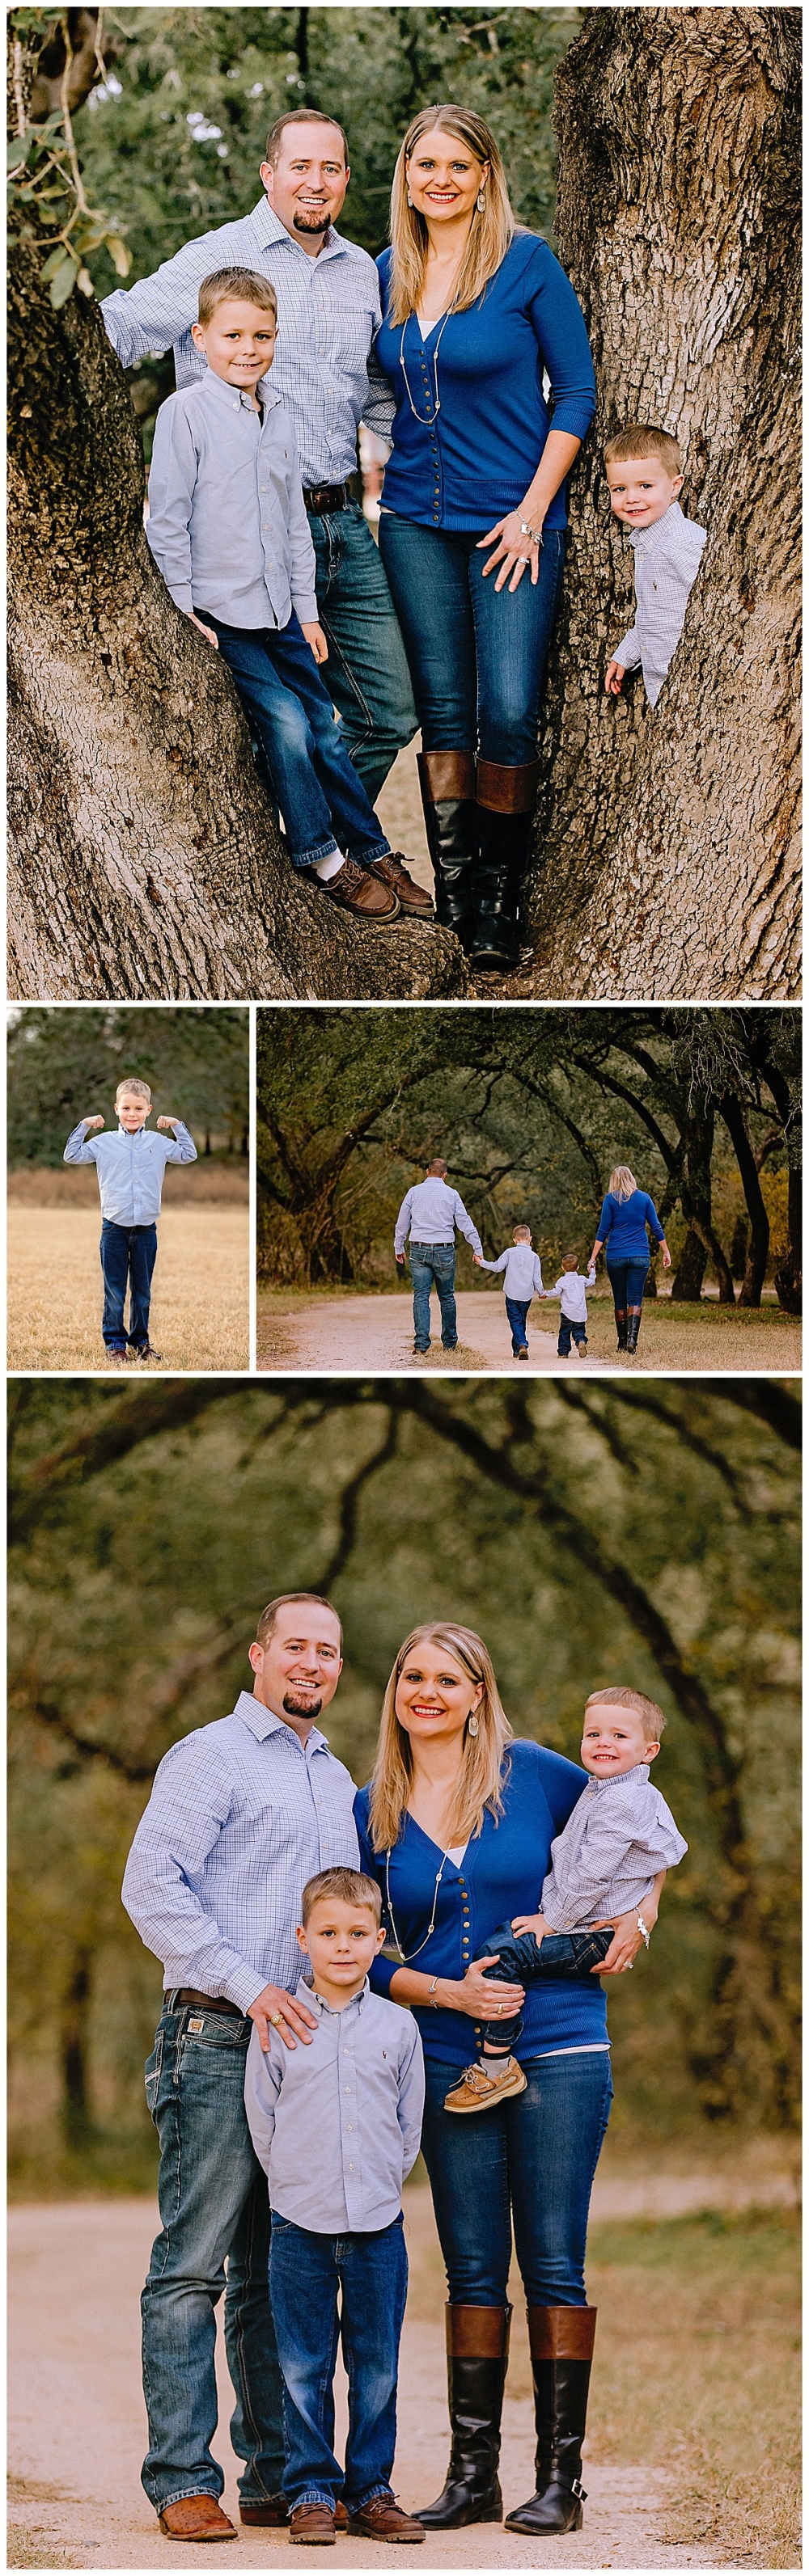 Family-Photographer-La-Vernia-Texas-LV-C-of-C-Hall-Fall-Photos-Brothers-Carly-Barton-Photography_0004.jpg